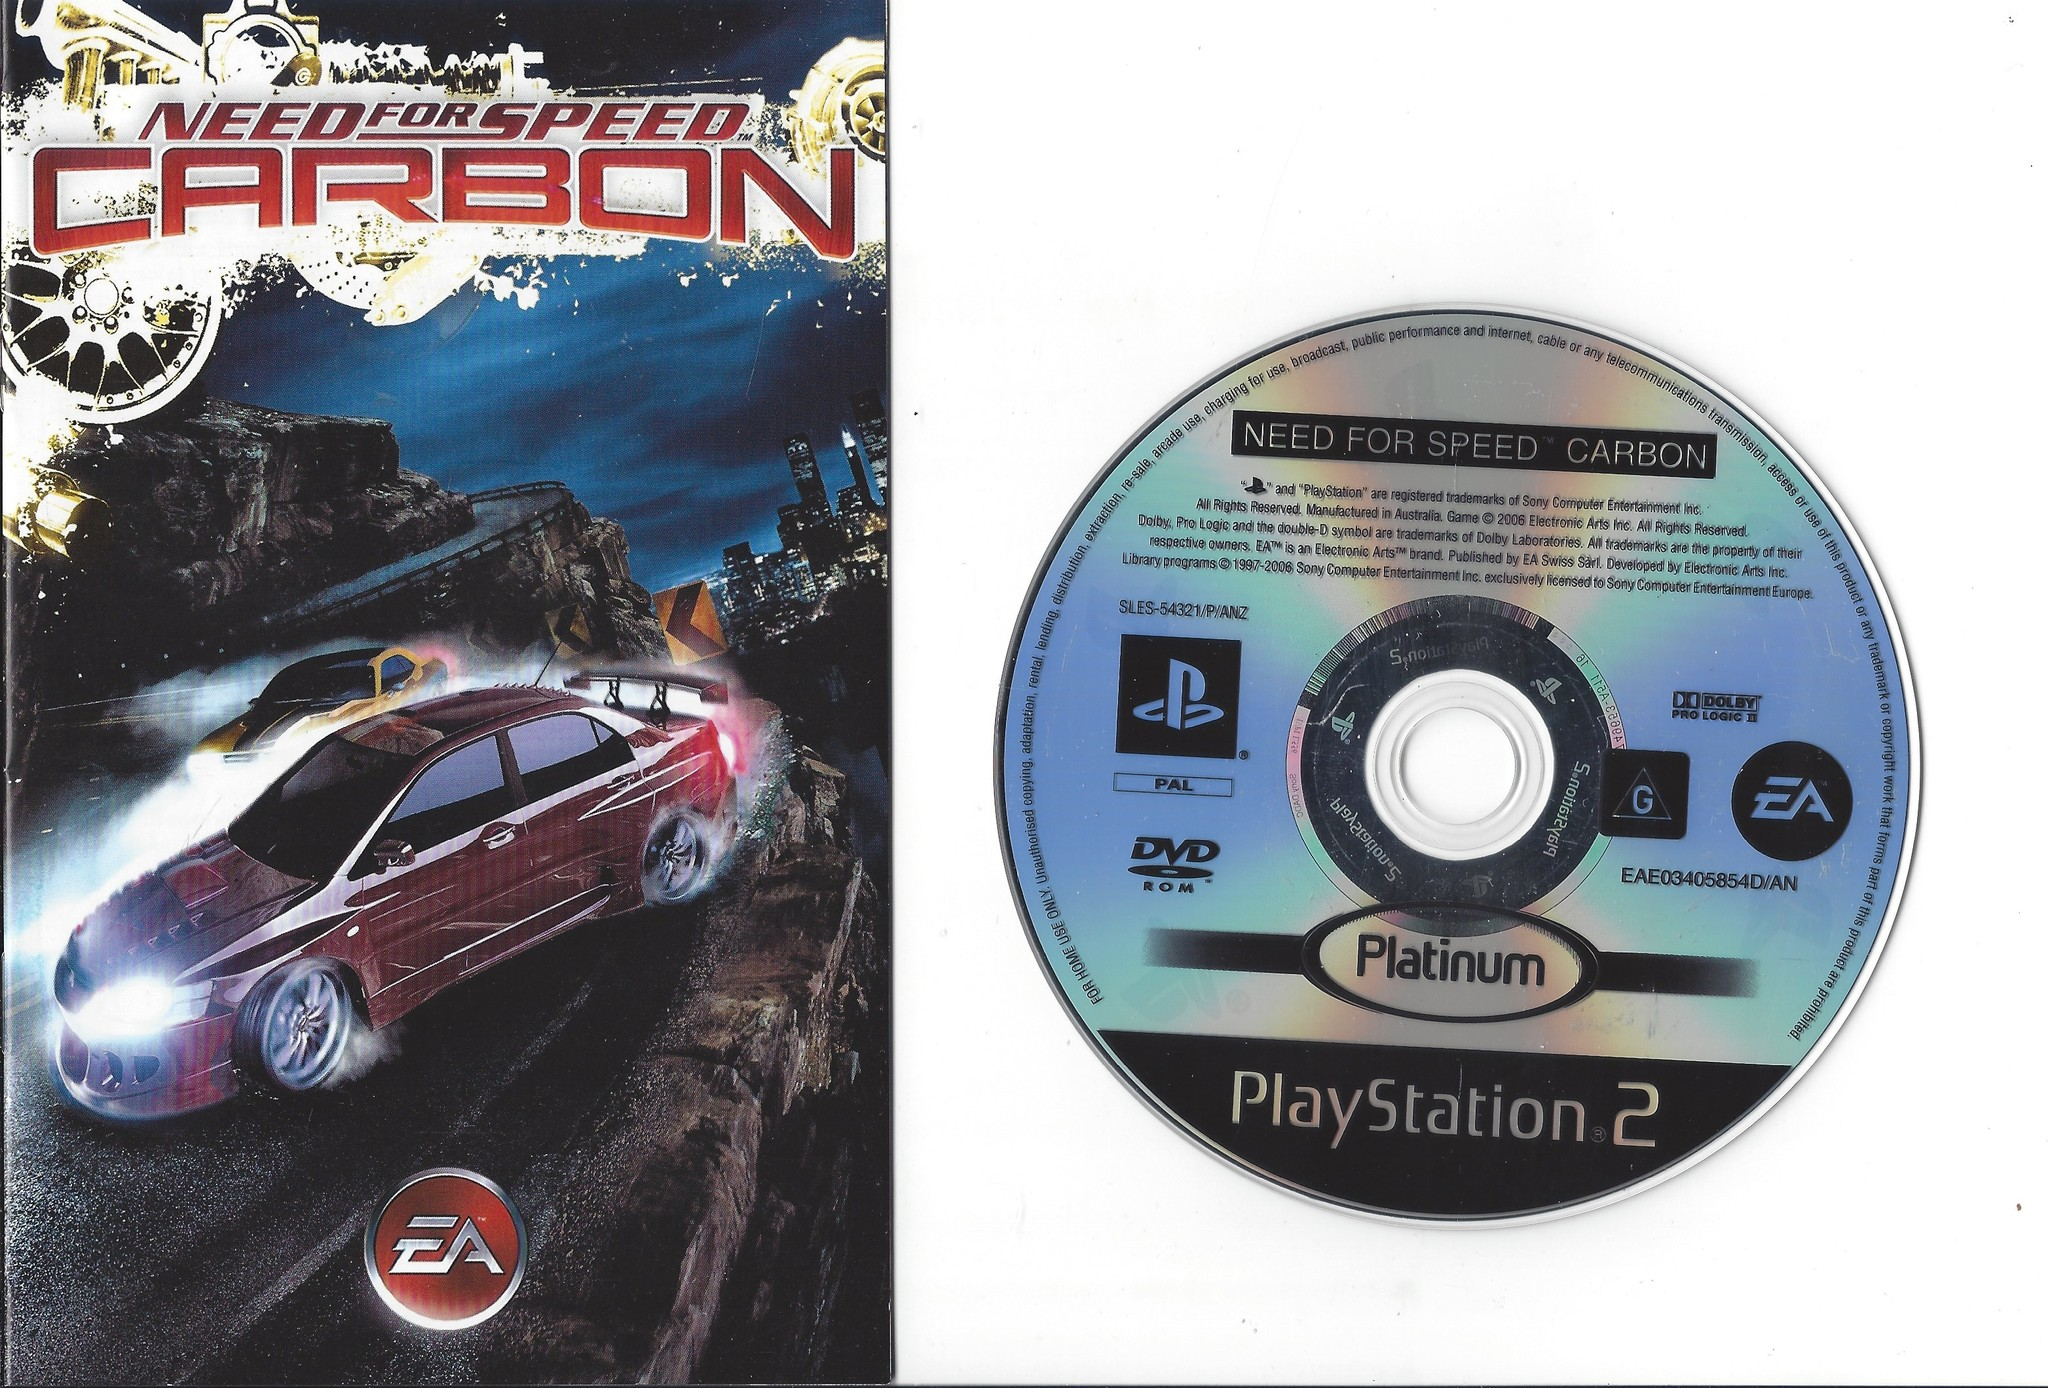 Need for Speed Carbon for Playstation 2 PS2 - Passion for